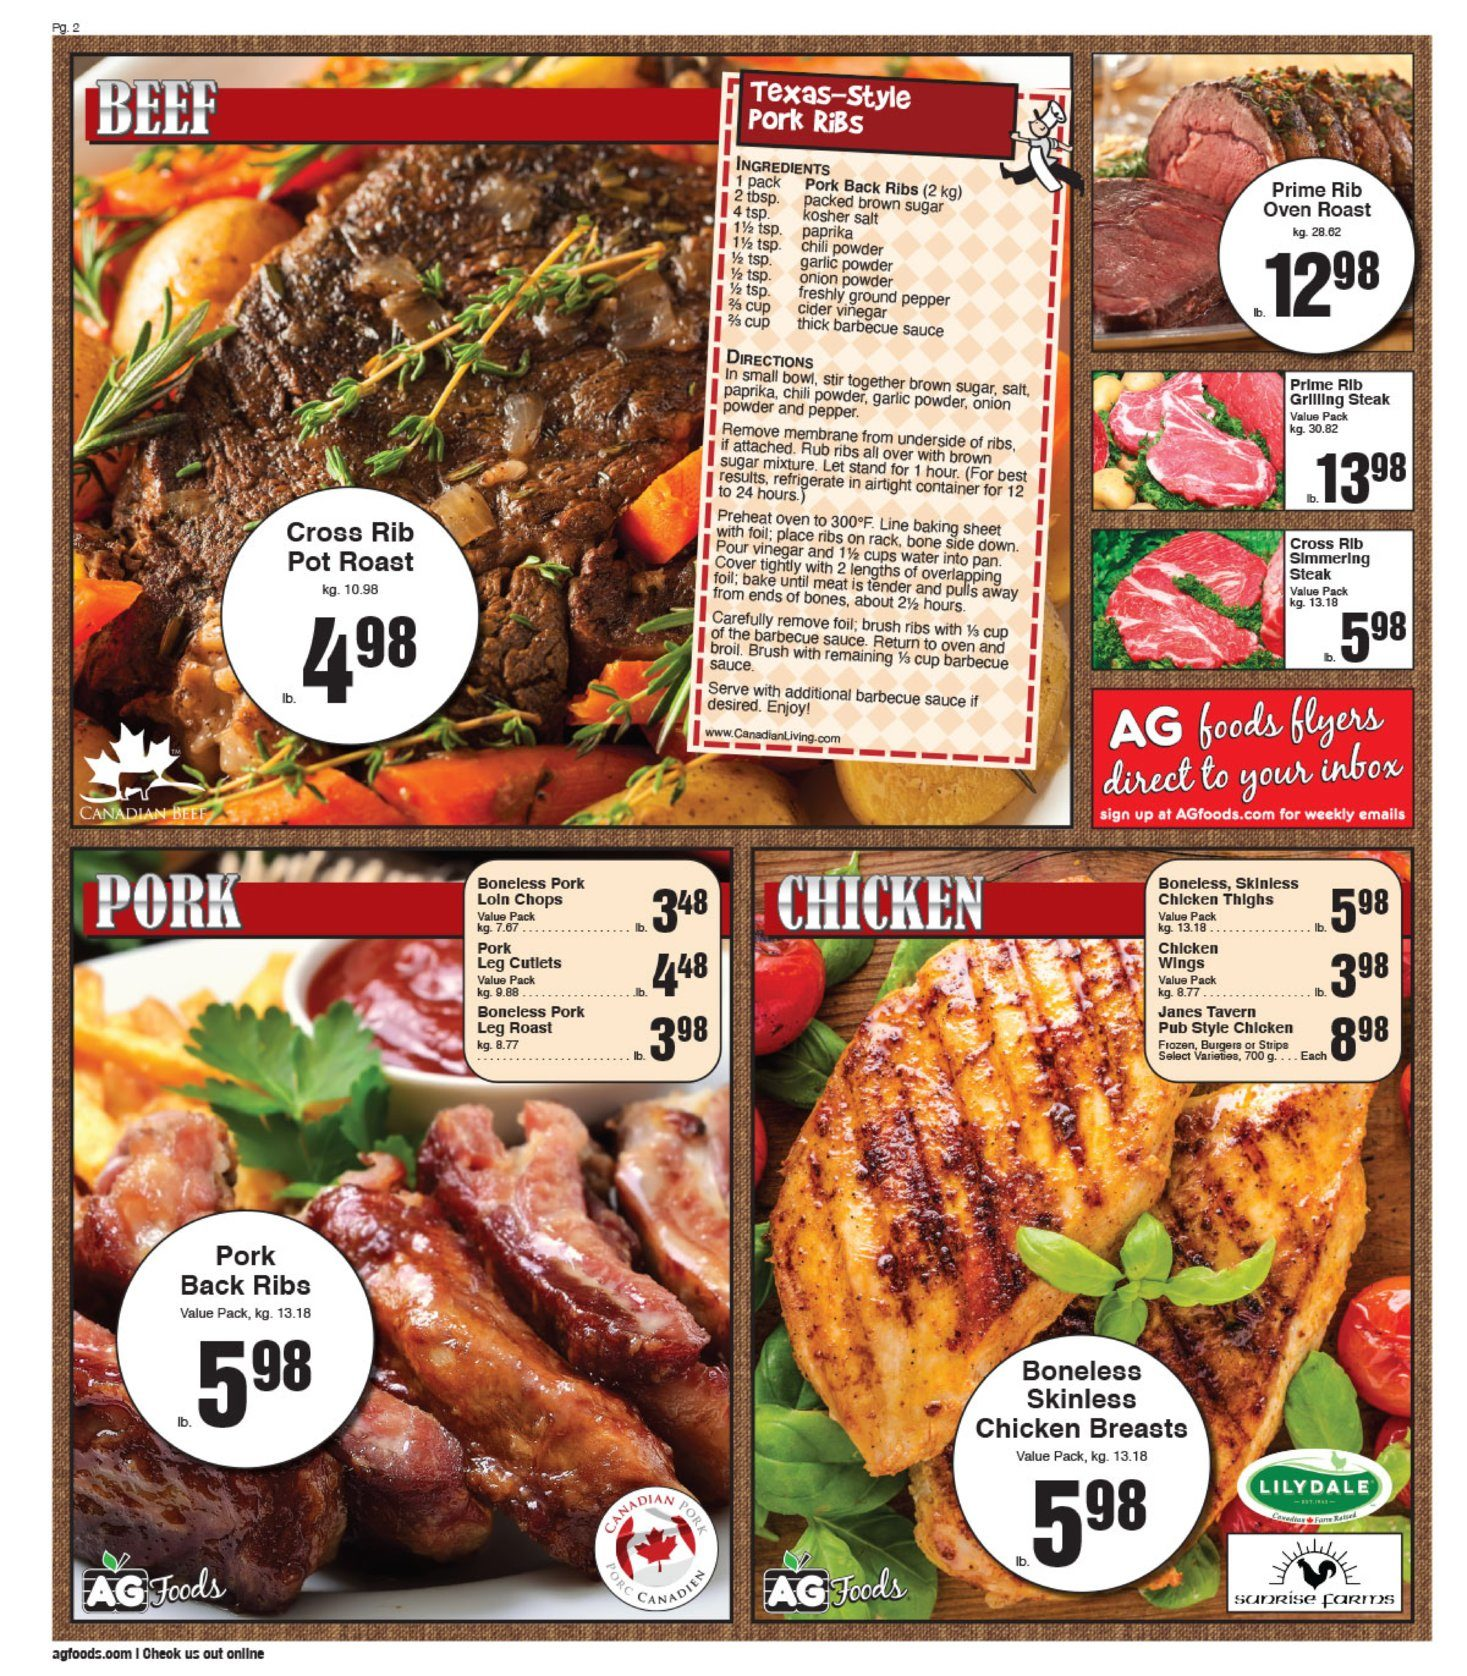 AG Foods - Weekly Flyer Specials - Page 2